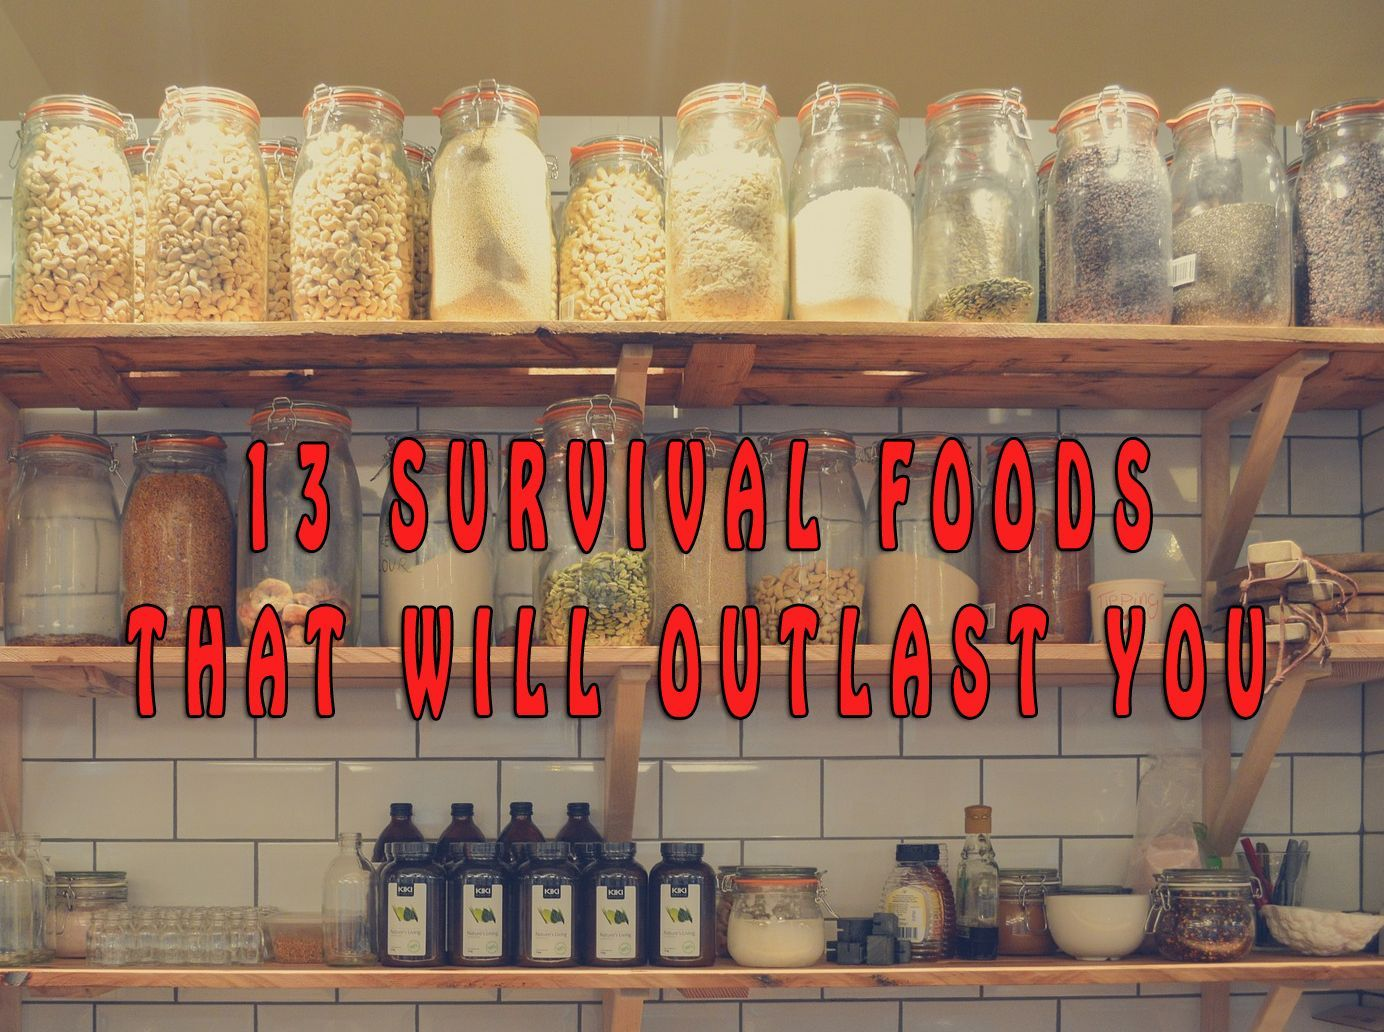 13 Survival Foods That Will Outlast You — If a regional or global disaster will hit tomorrow, do you have all the basics like food and water covered? Will you be able to survive with what you stored in your pantry? Stockpiling food and water shouldn't be seen as a controversial activity and there are a lot of real dangers in today's world that should make you think about how uncertain our future is.